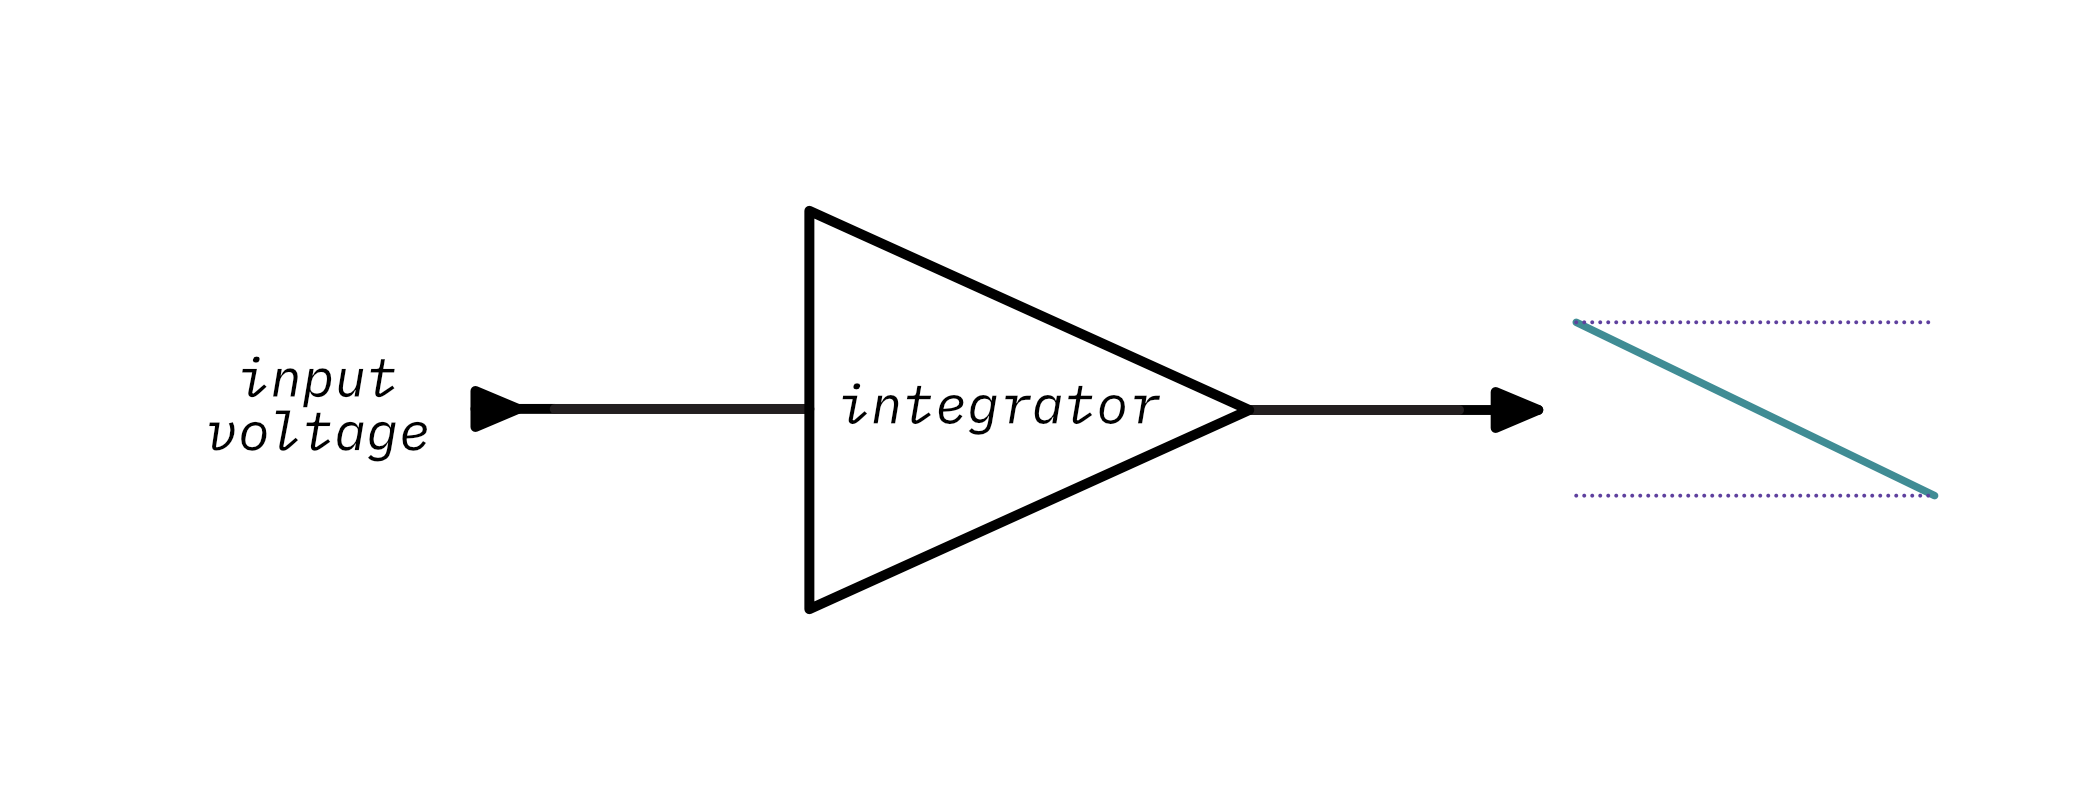 An ideal integrator